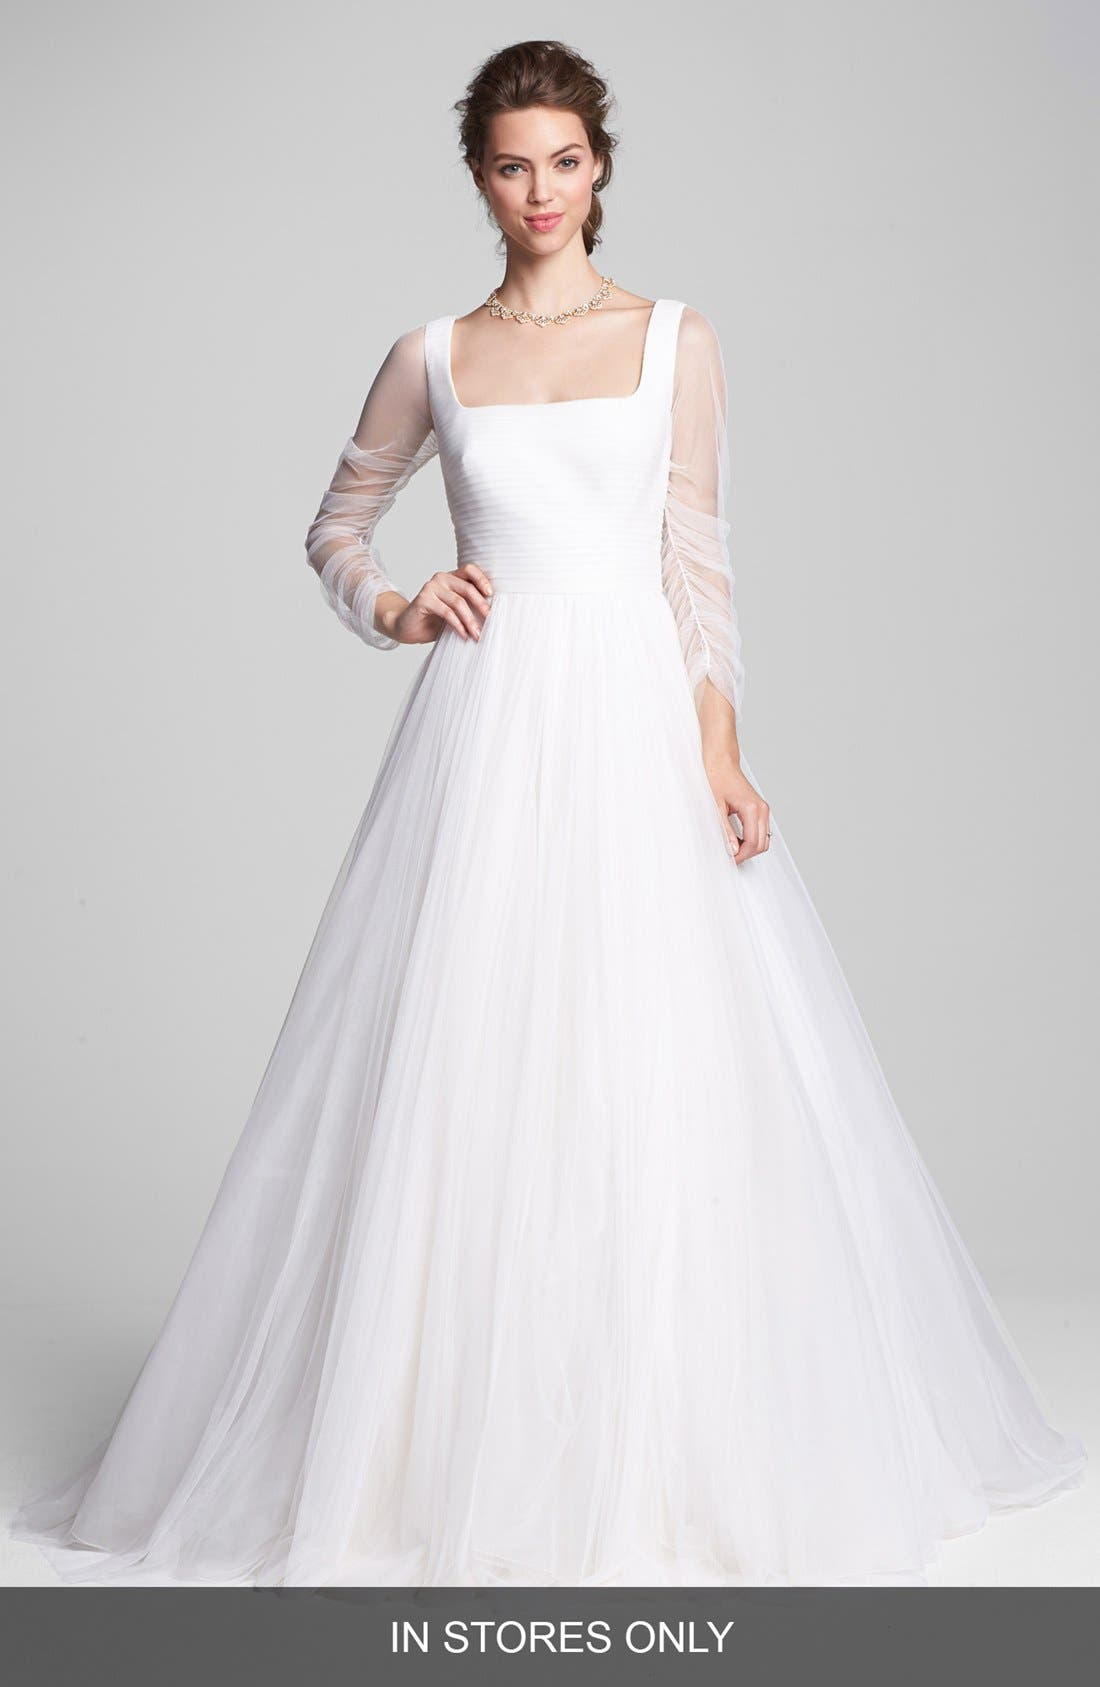 Alternate Image 1 Selected - Rosa Clara 'Belinda' Full Skirt Chiffon Dress (In Stores Only)